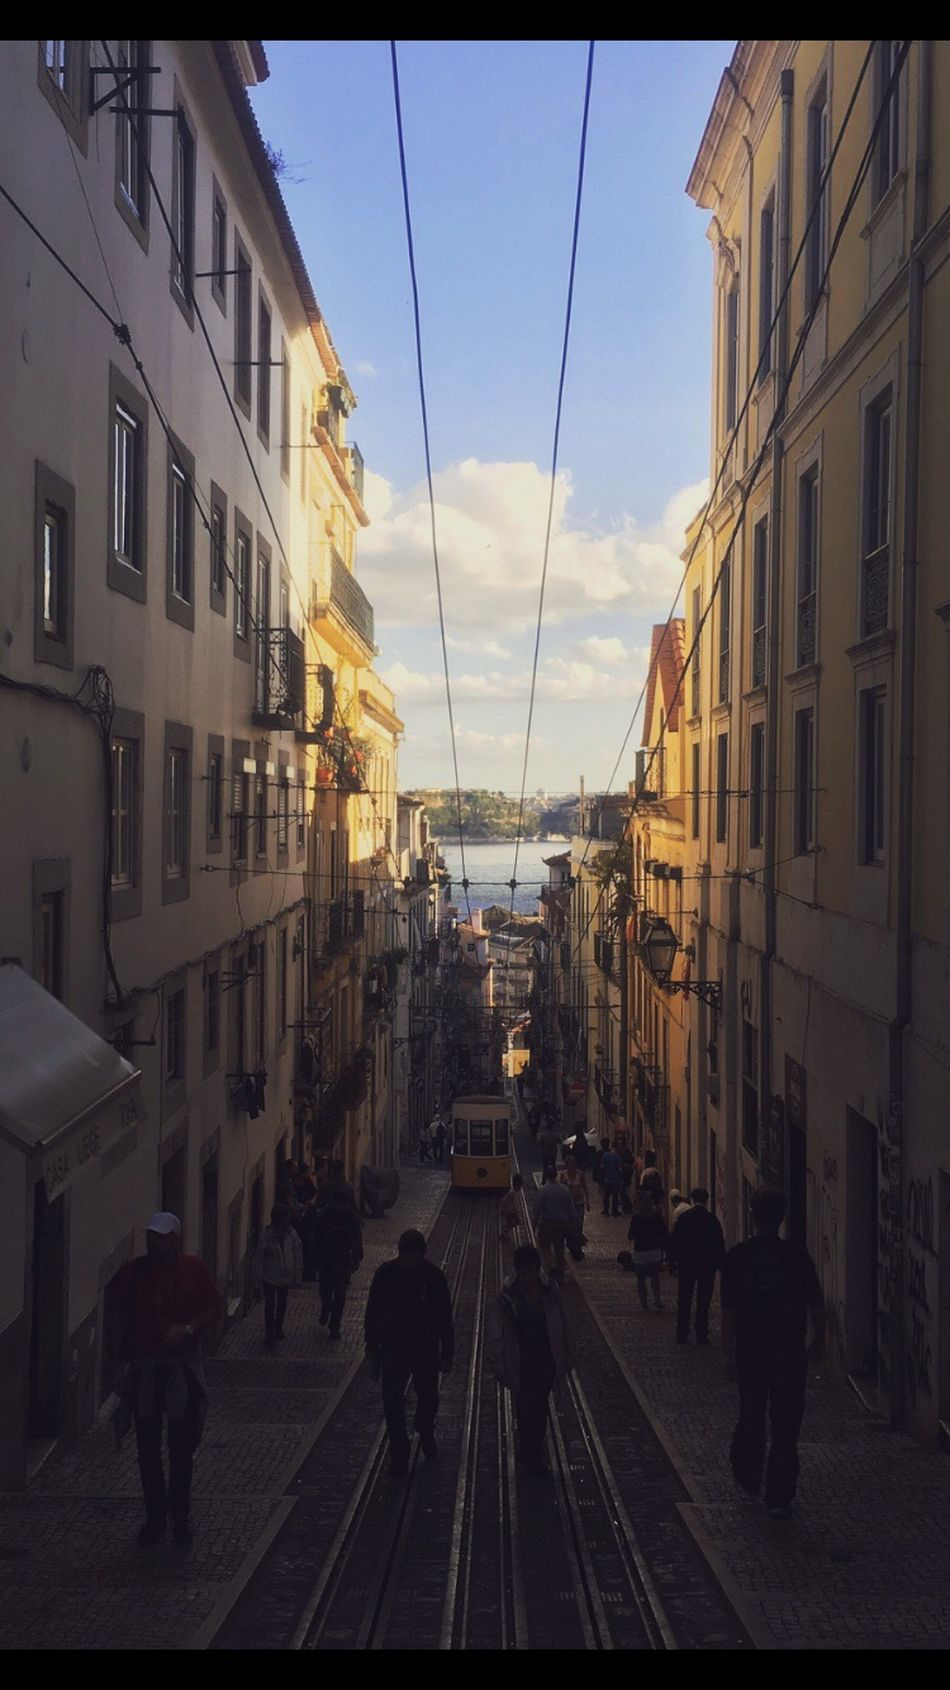 ... Lisbon, you had me right there Architecture Transportation Cable City Lisbon Portugal Cable Car Hill Summer Life